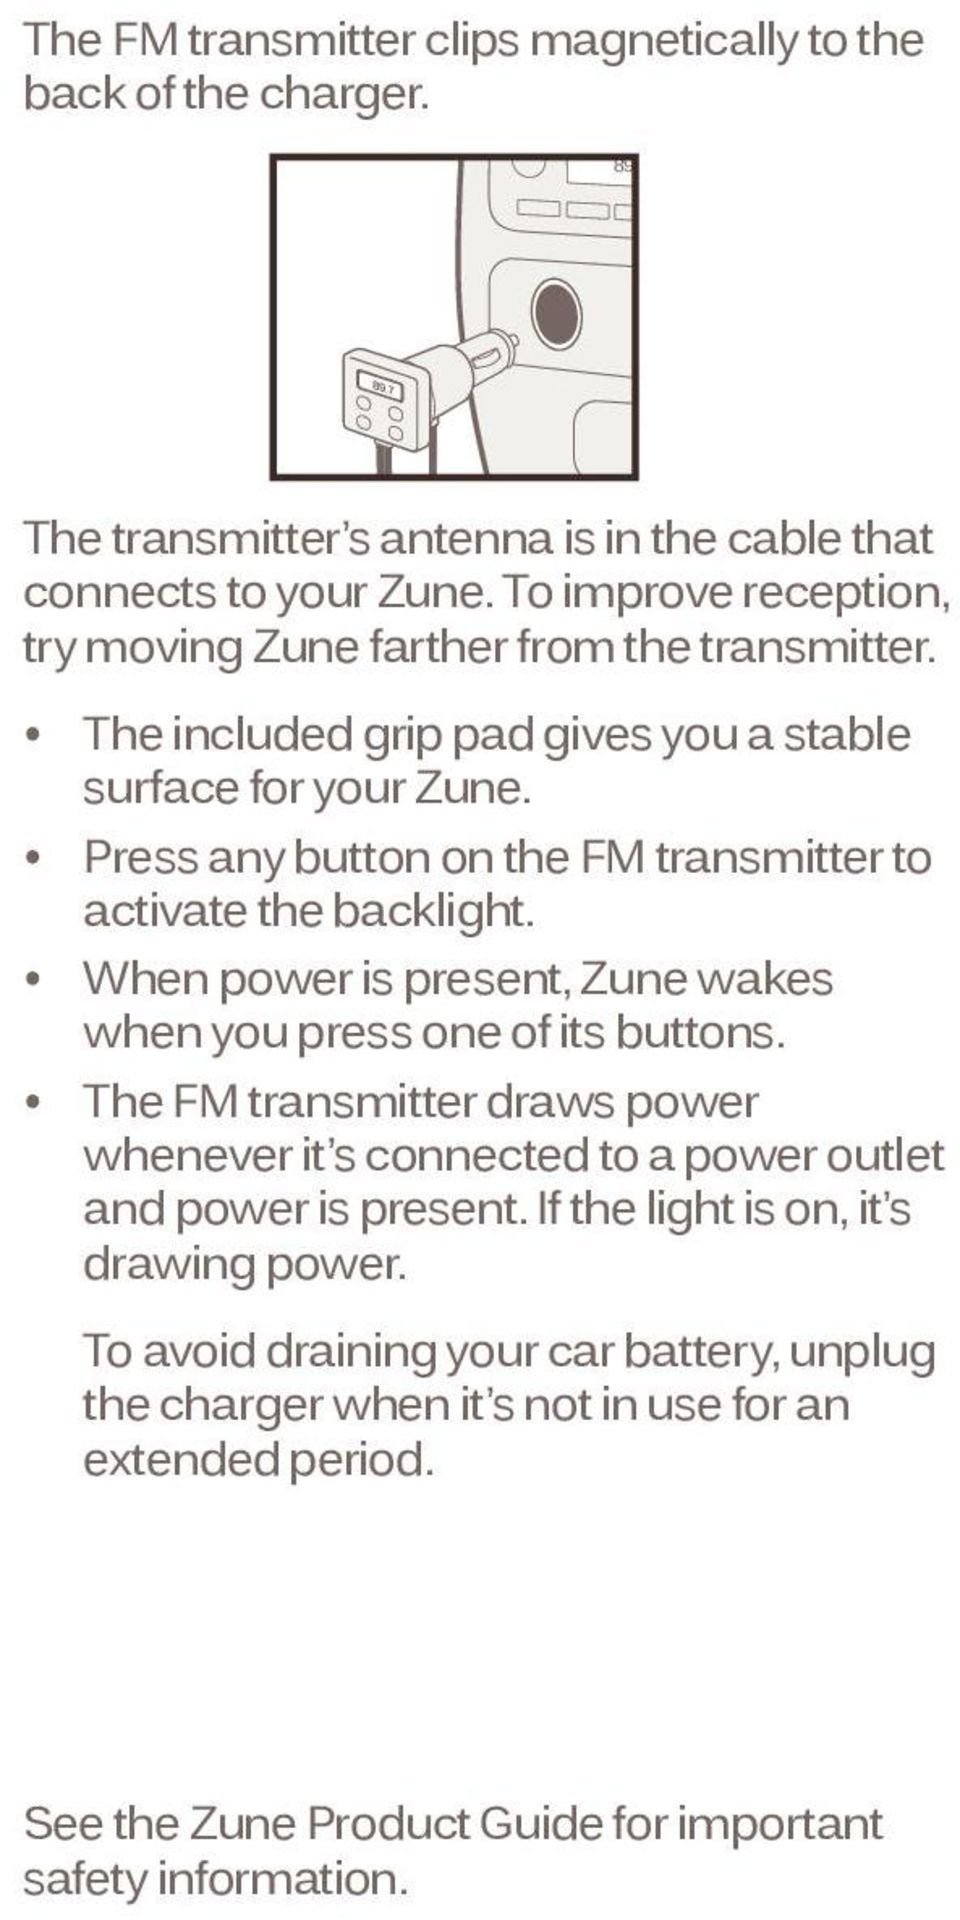 Press any button on the FM transmitter to activate the backlight. When power is present, Zune wakes when you press one of its buttons.